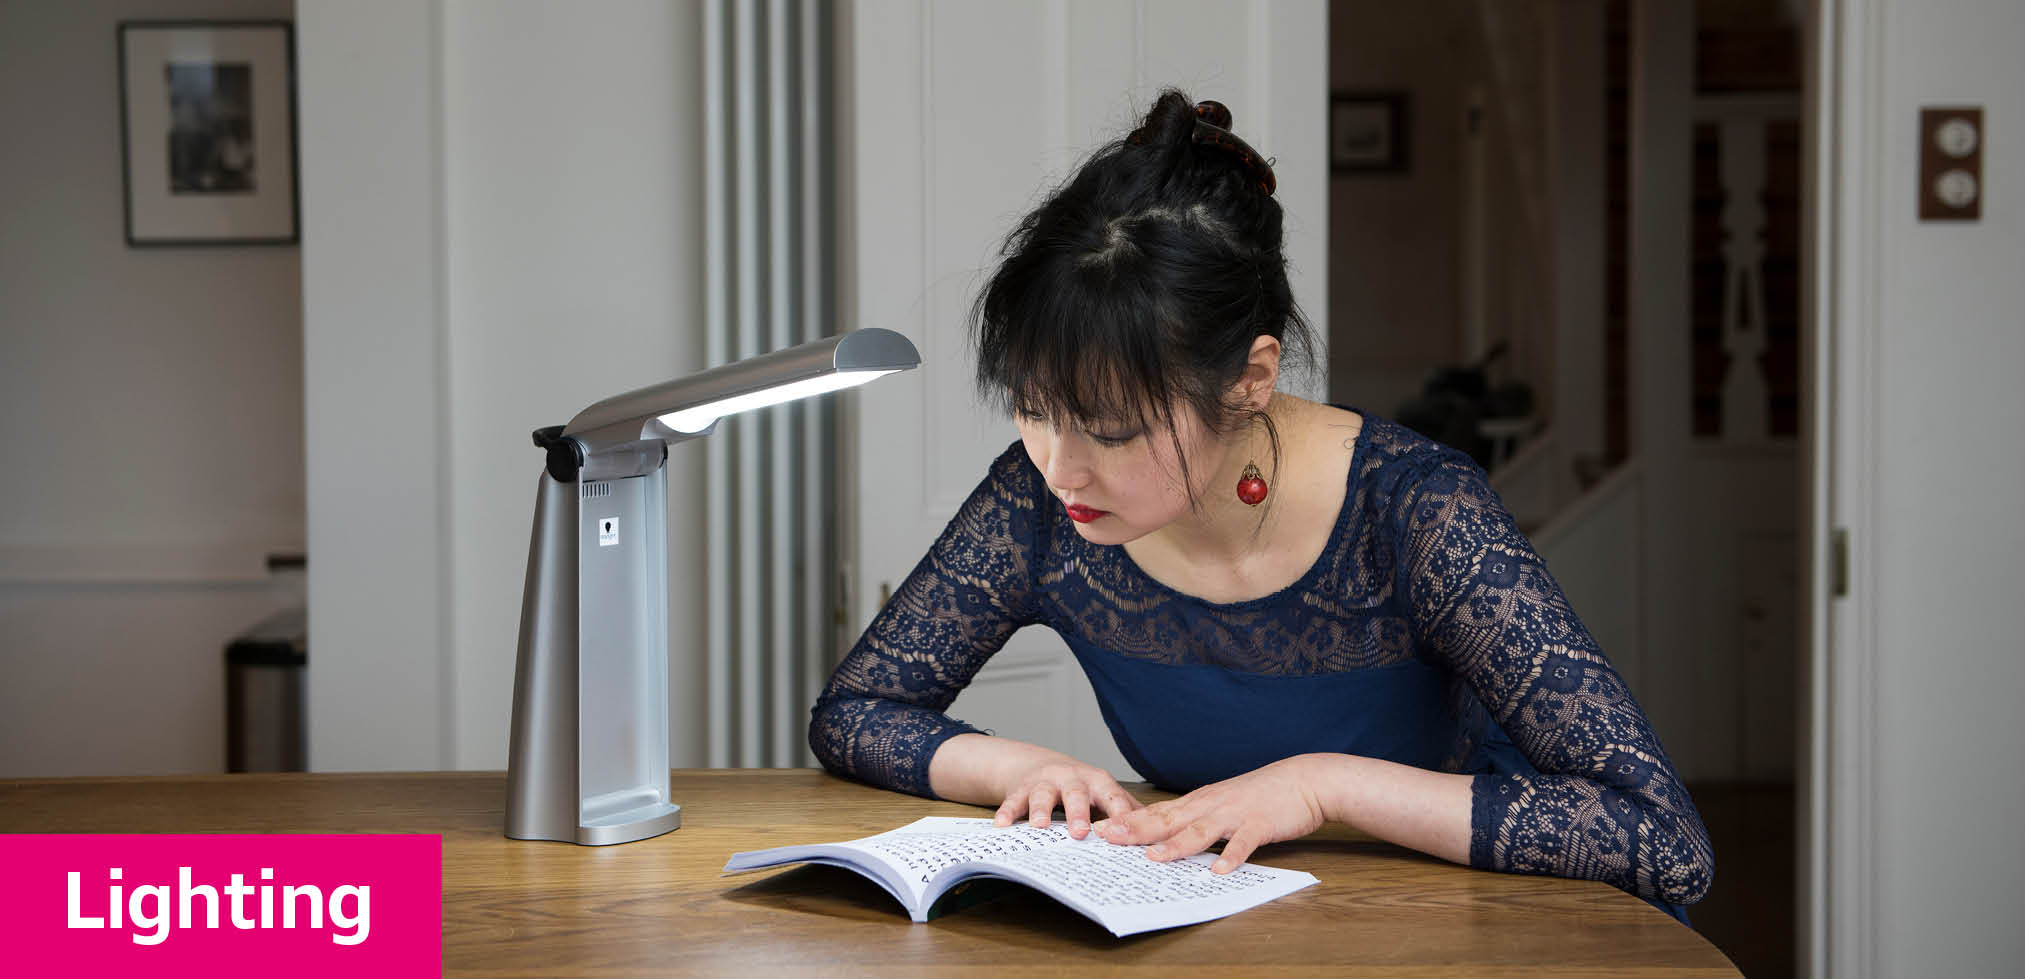 Lady sitting at table with desk light to help read her book